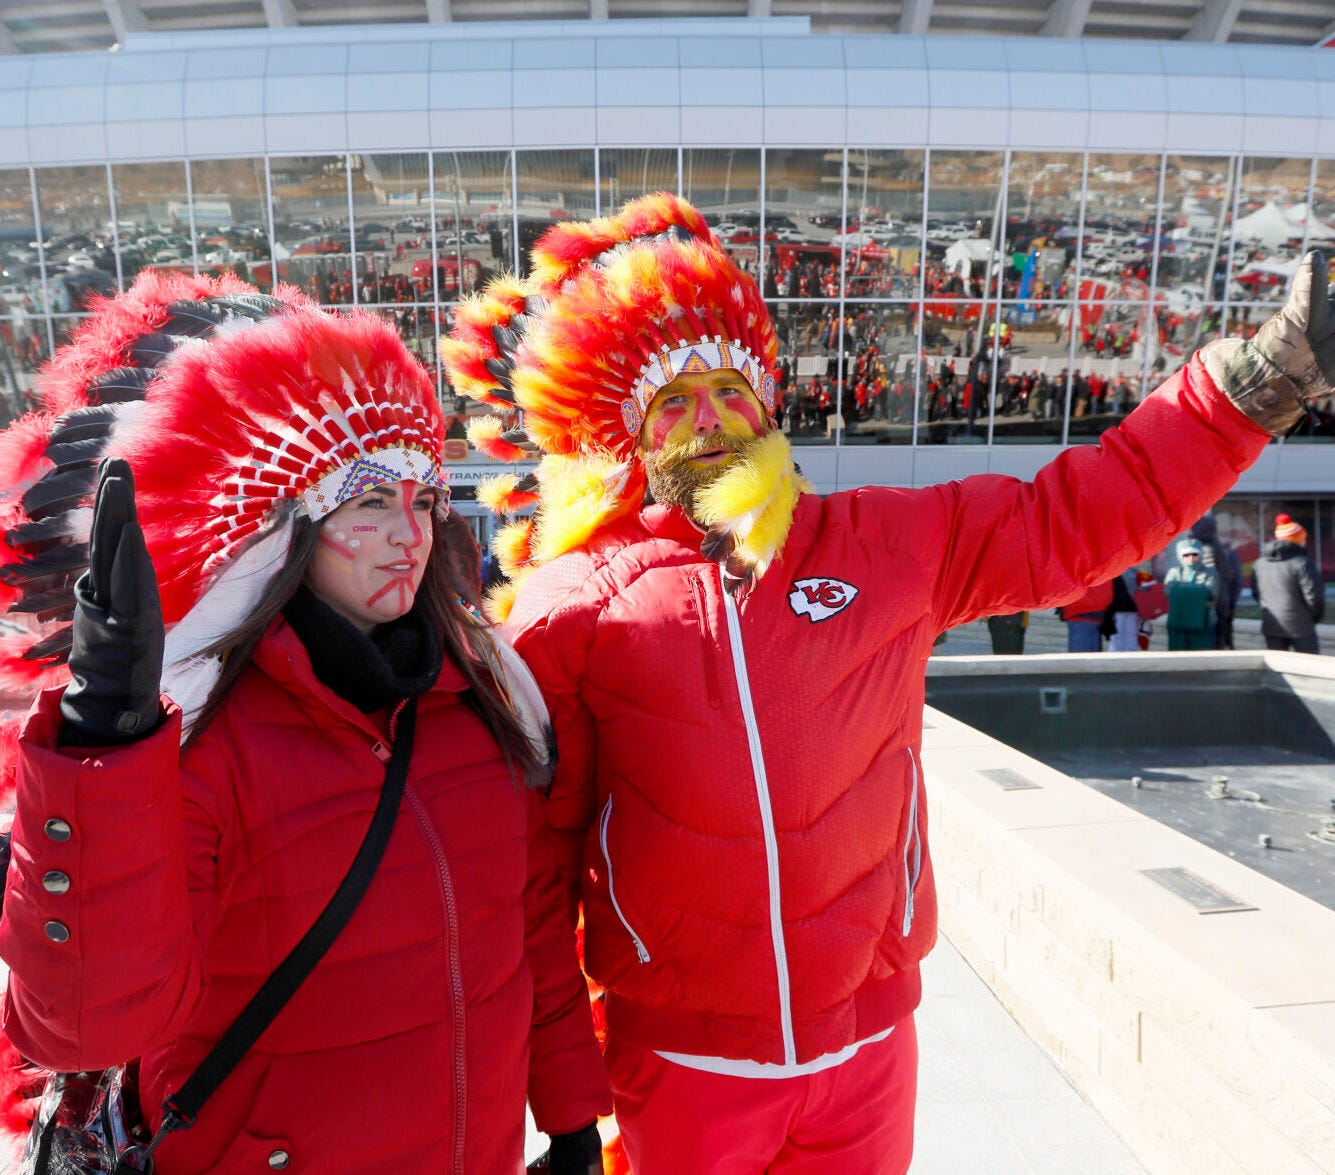 Should the Chiefs ban Native American headdresses and face paint?